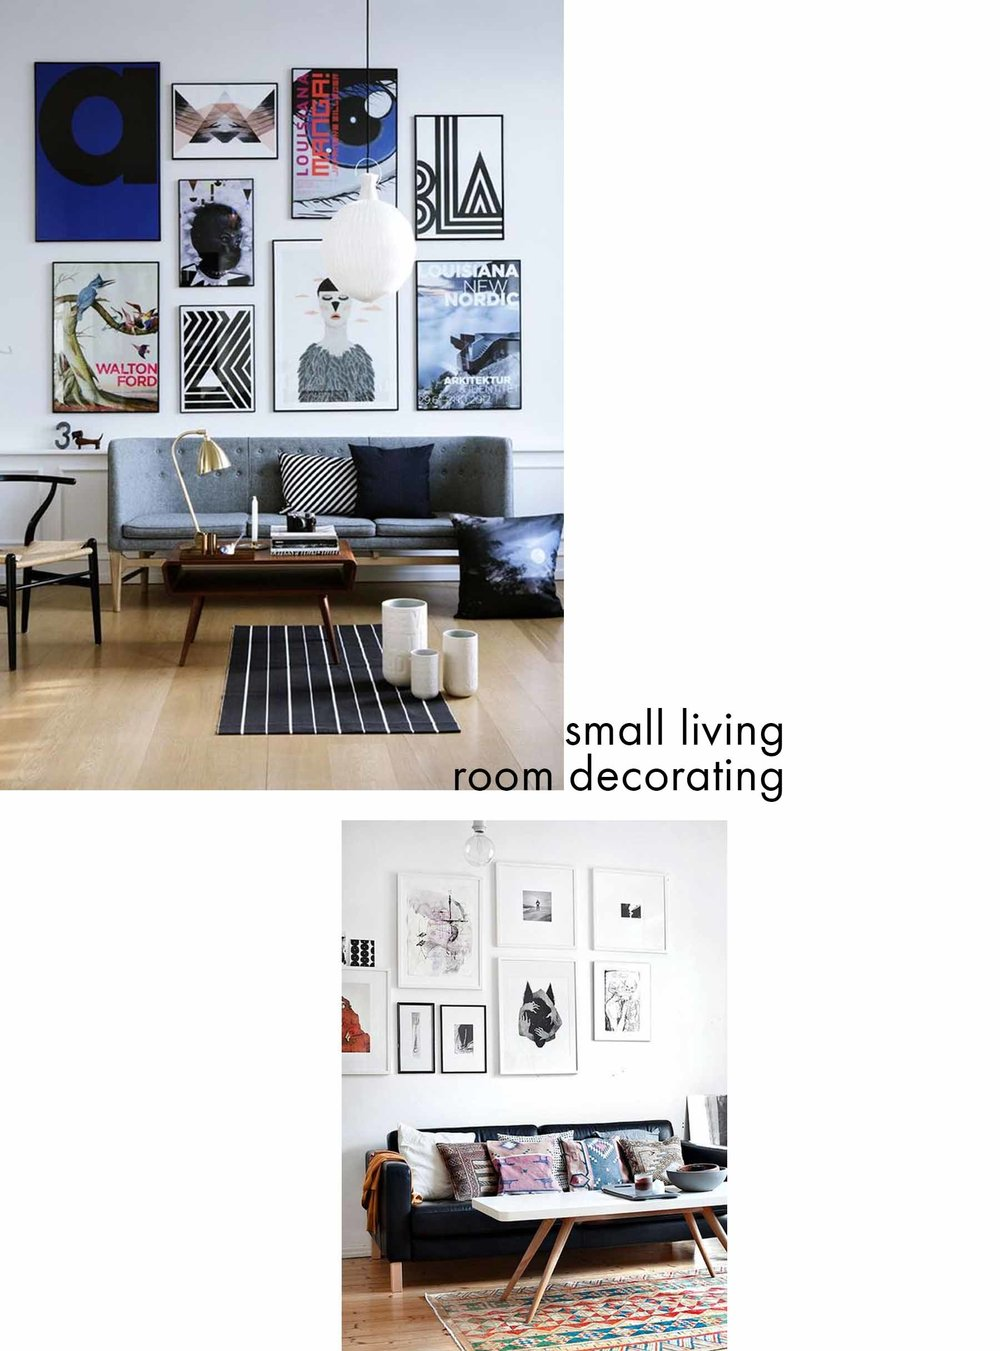 Small Living Room - Decorating Ideas